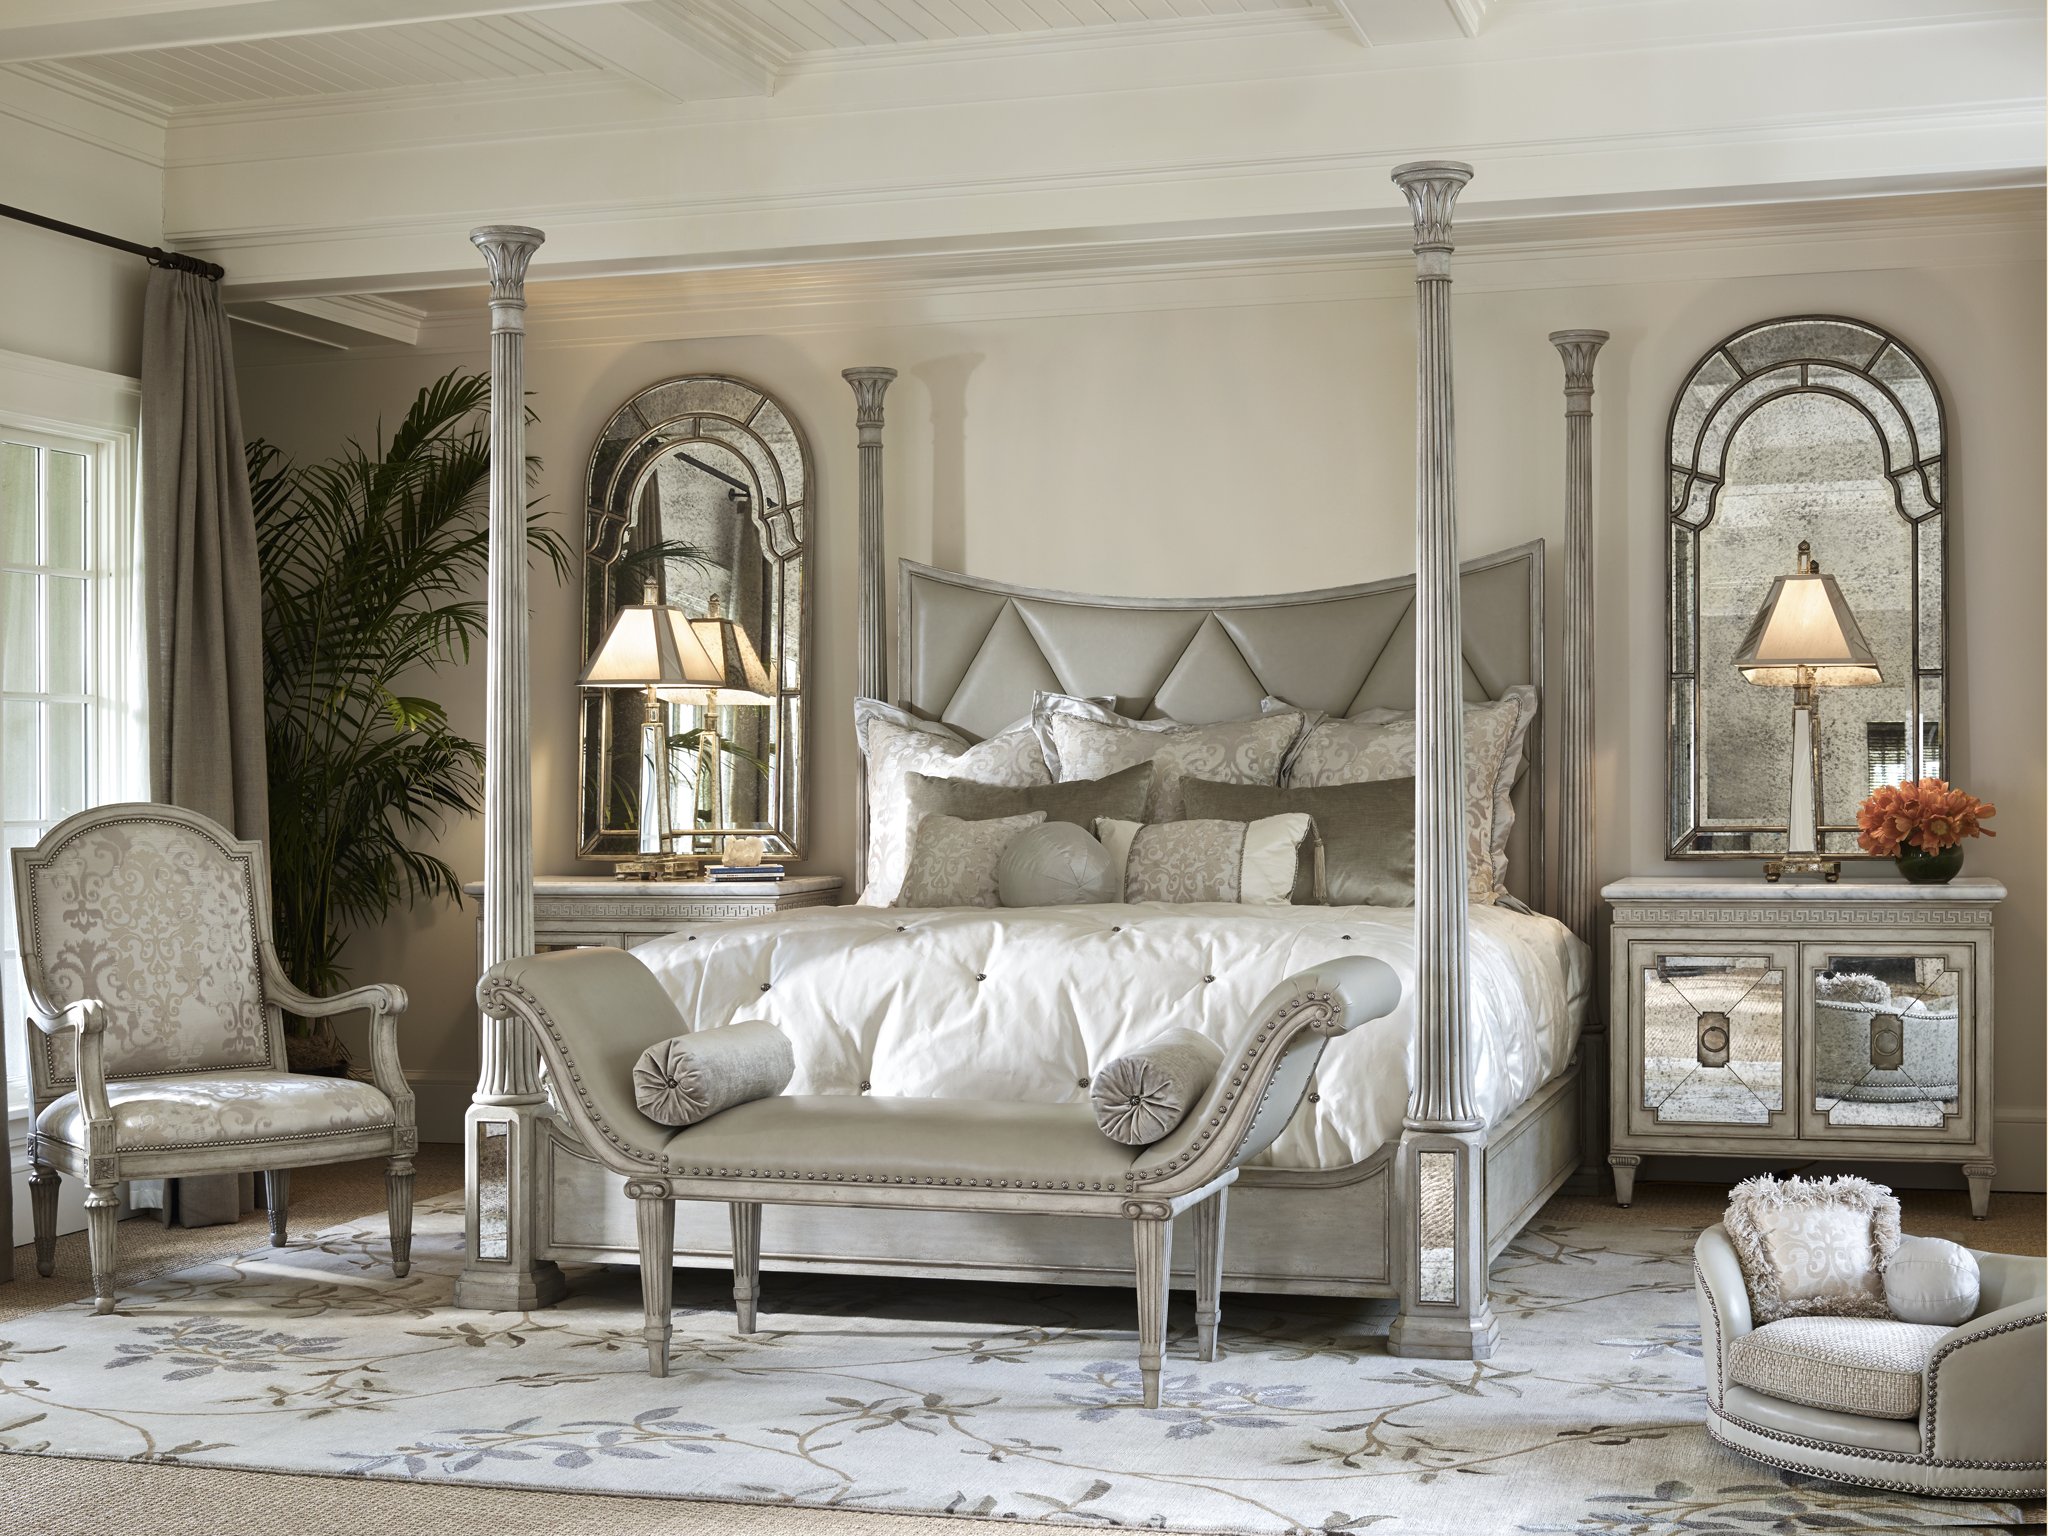 The Ionia four poster bed with diamond tufted upholstery and ...